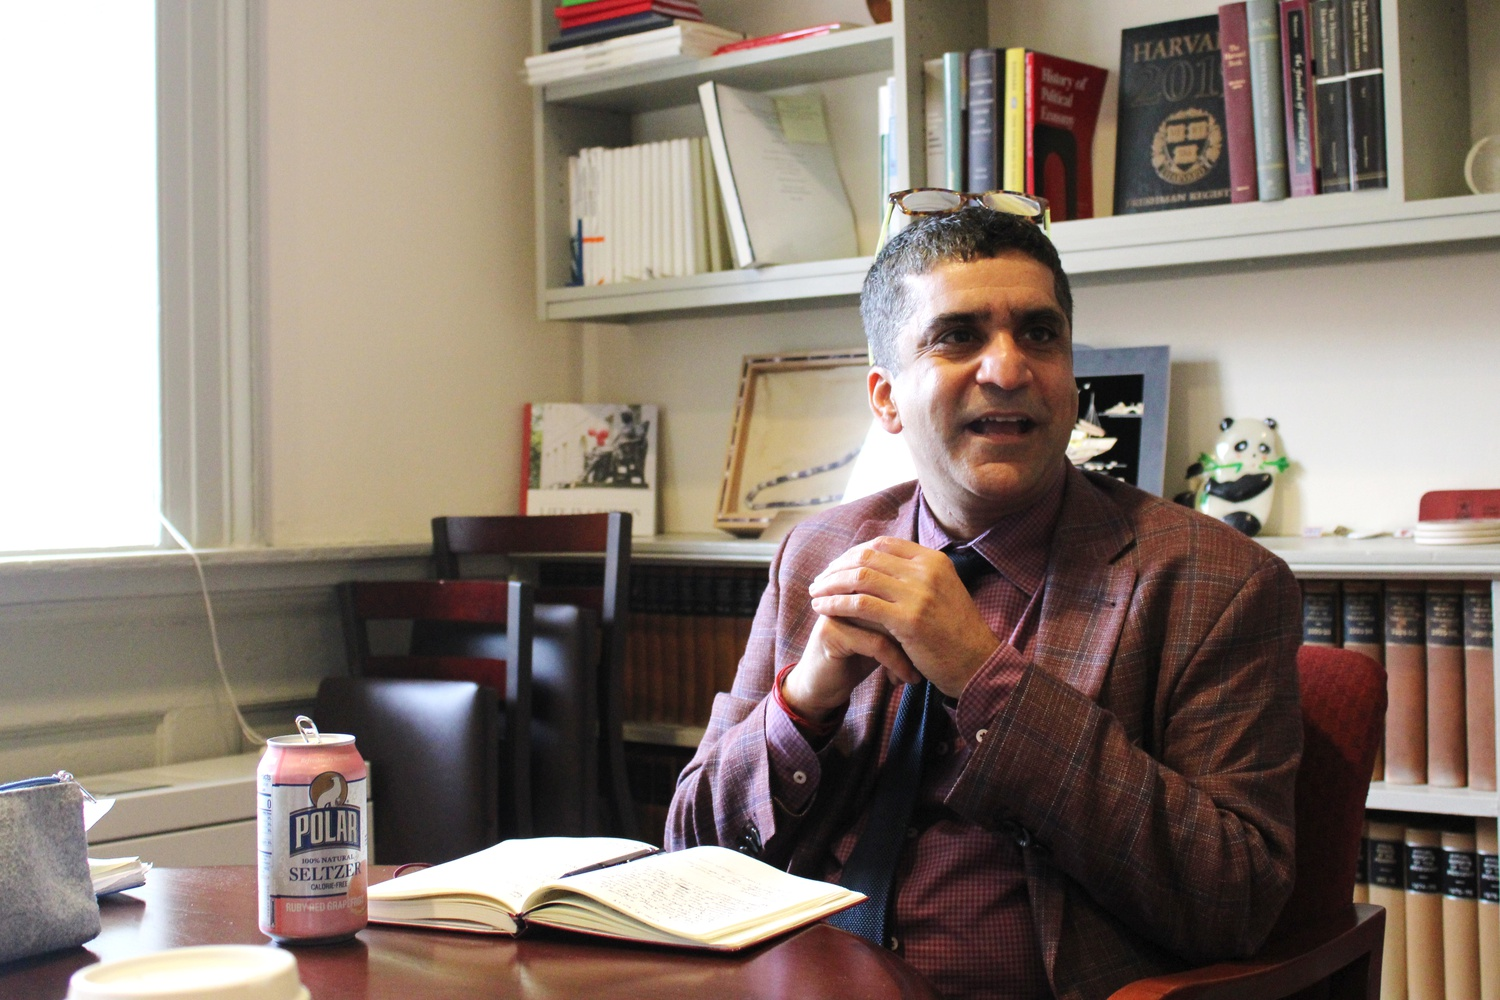 Dean of the College Rakesh Khurana discussed the possibility of an Ethnic Studies concentration in an interview Tuesday.